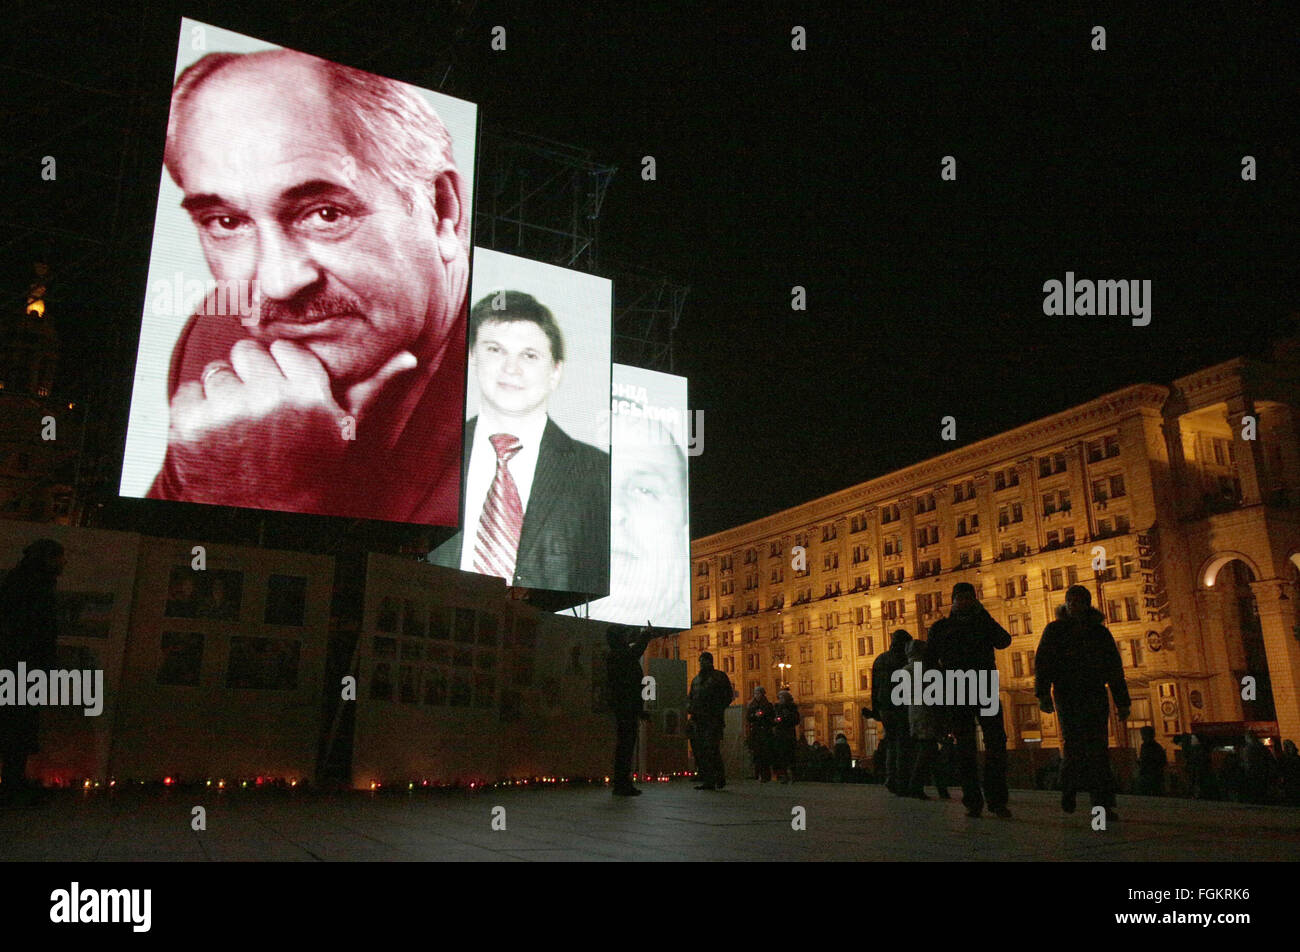 Jan. 21, 2016 - Large screens with the faces of Maidan activists, who were killed during anti-government protests - Stock Image